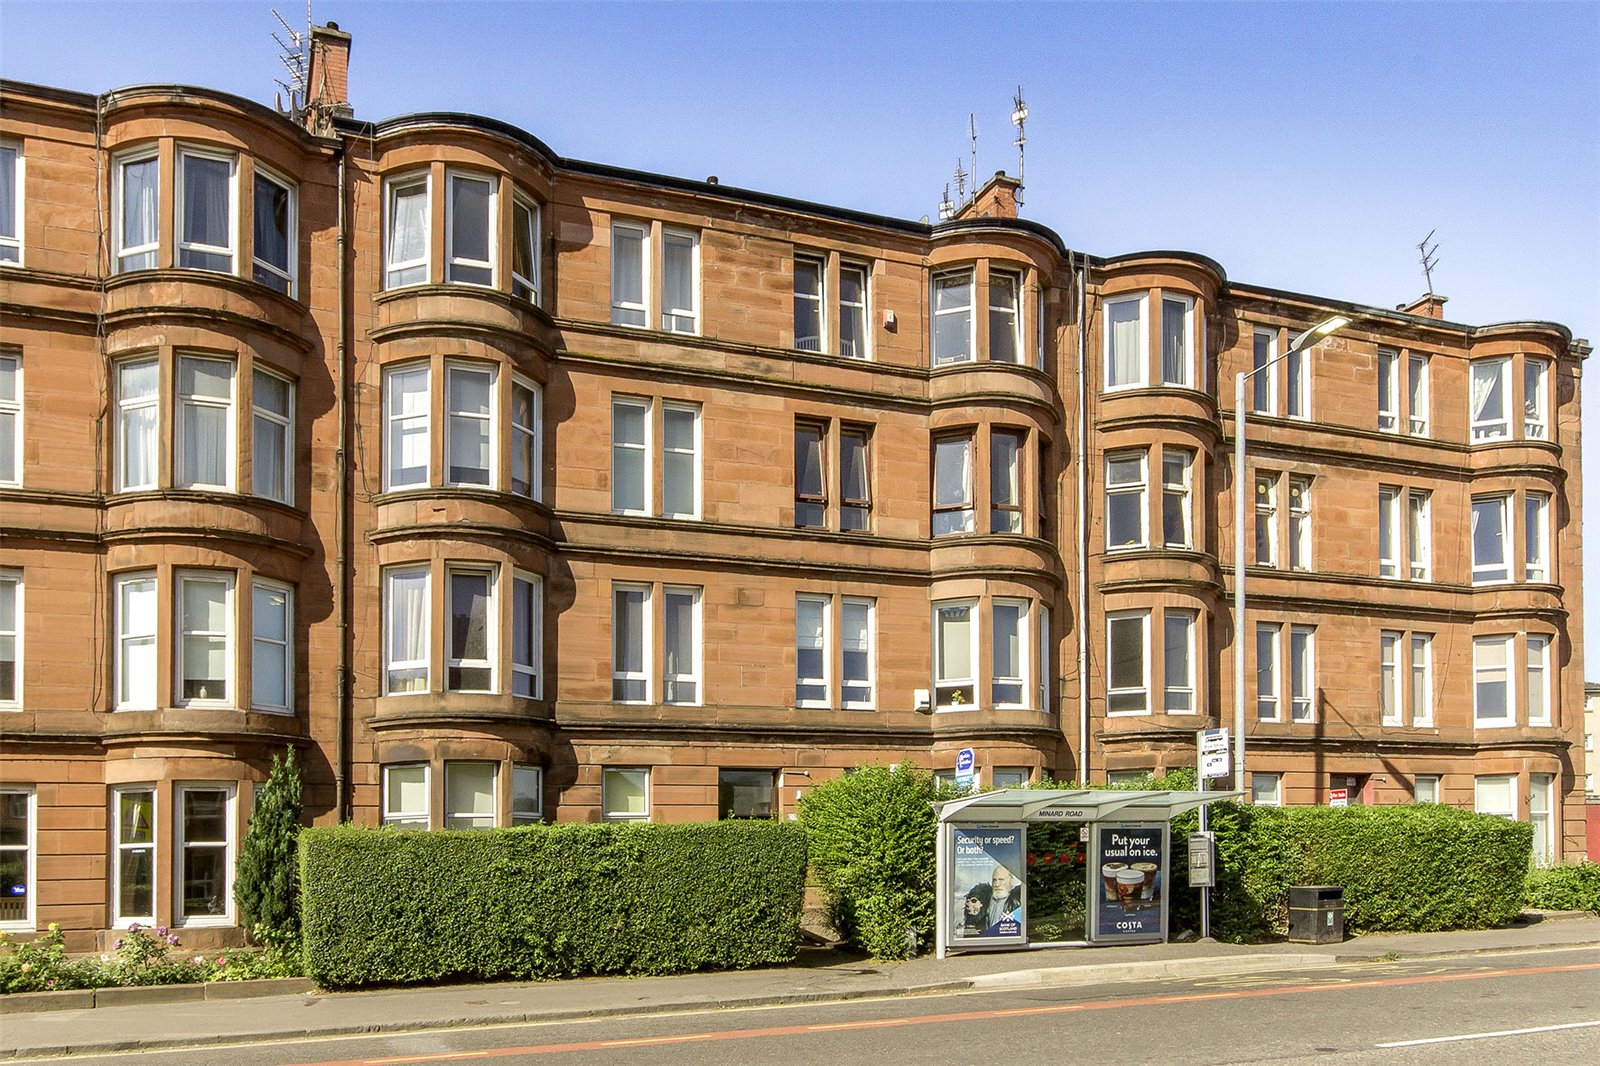 £110k flat within minutes of Glasgow City Centre